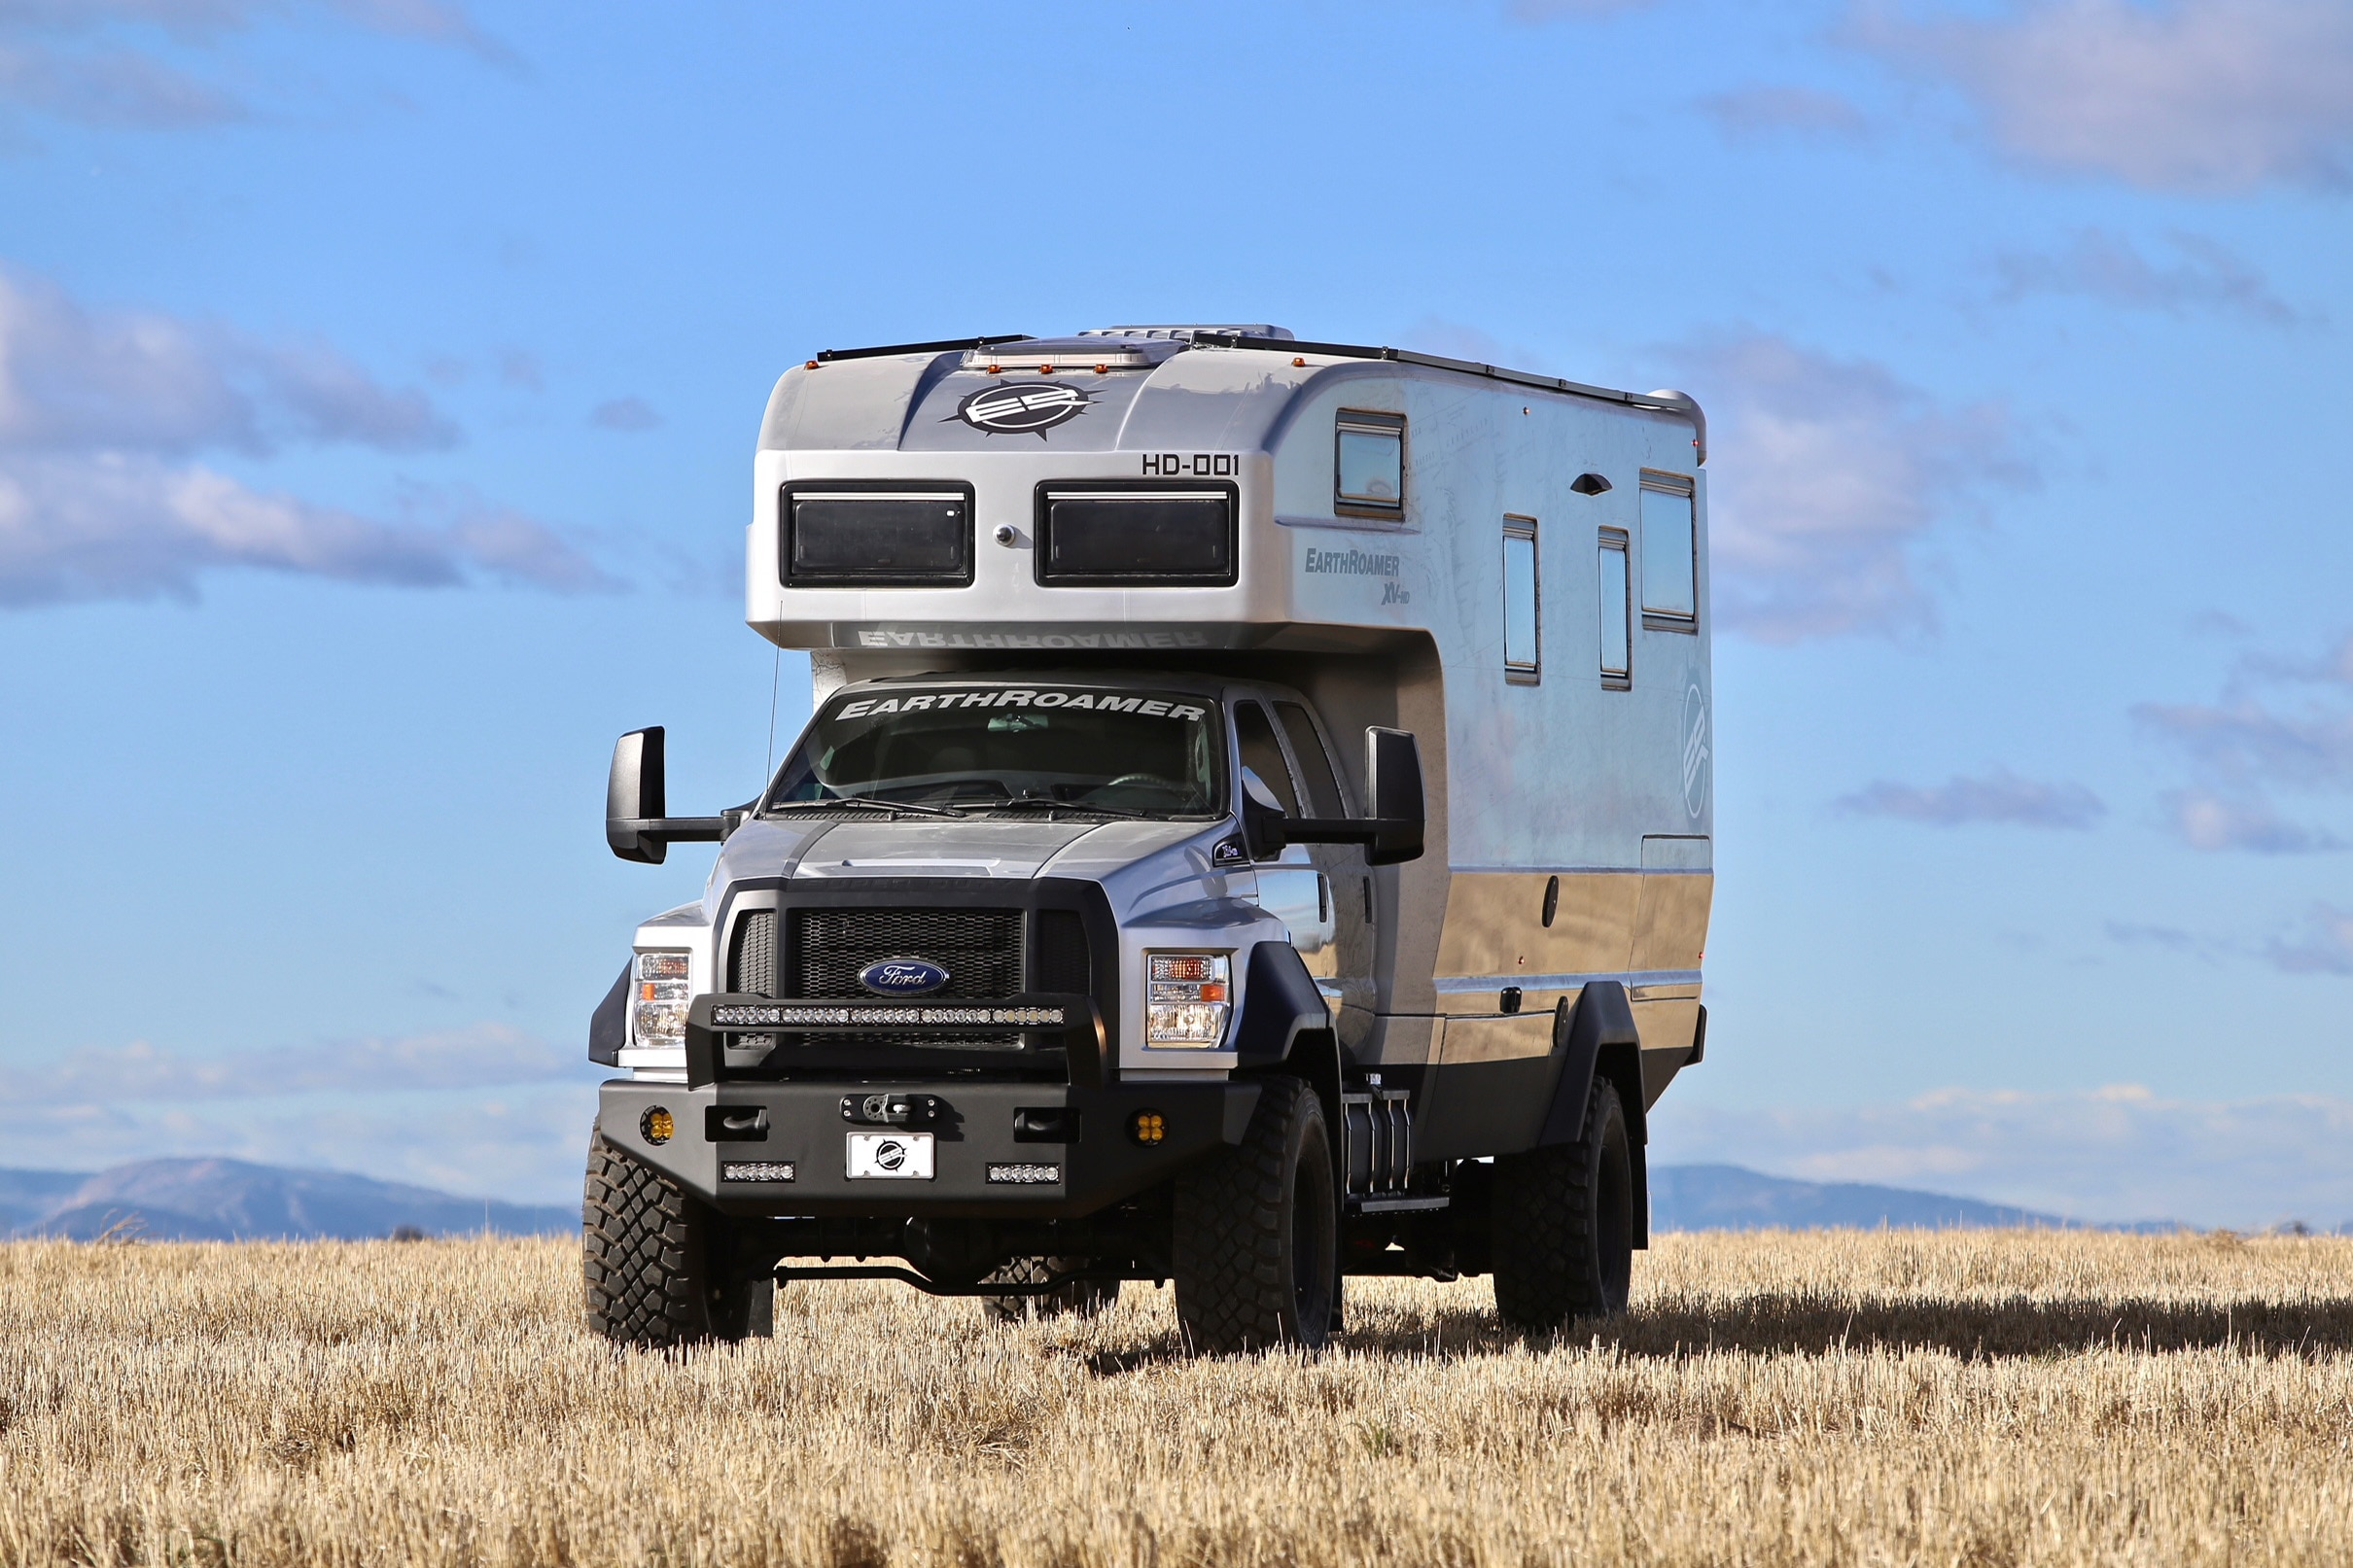 Earthroamer Xv Hd Super Camper Can Be Yours For 1 5